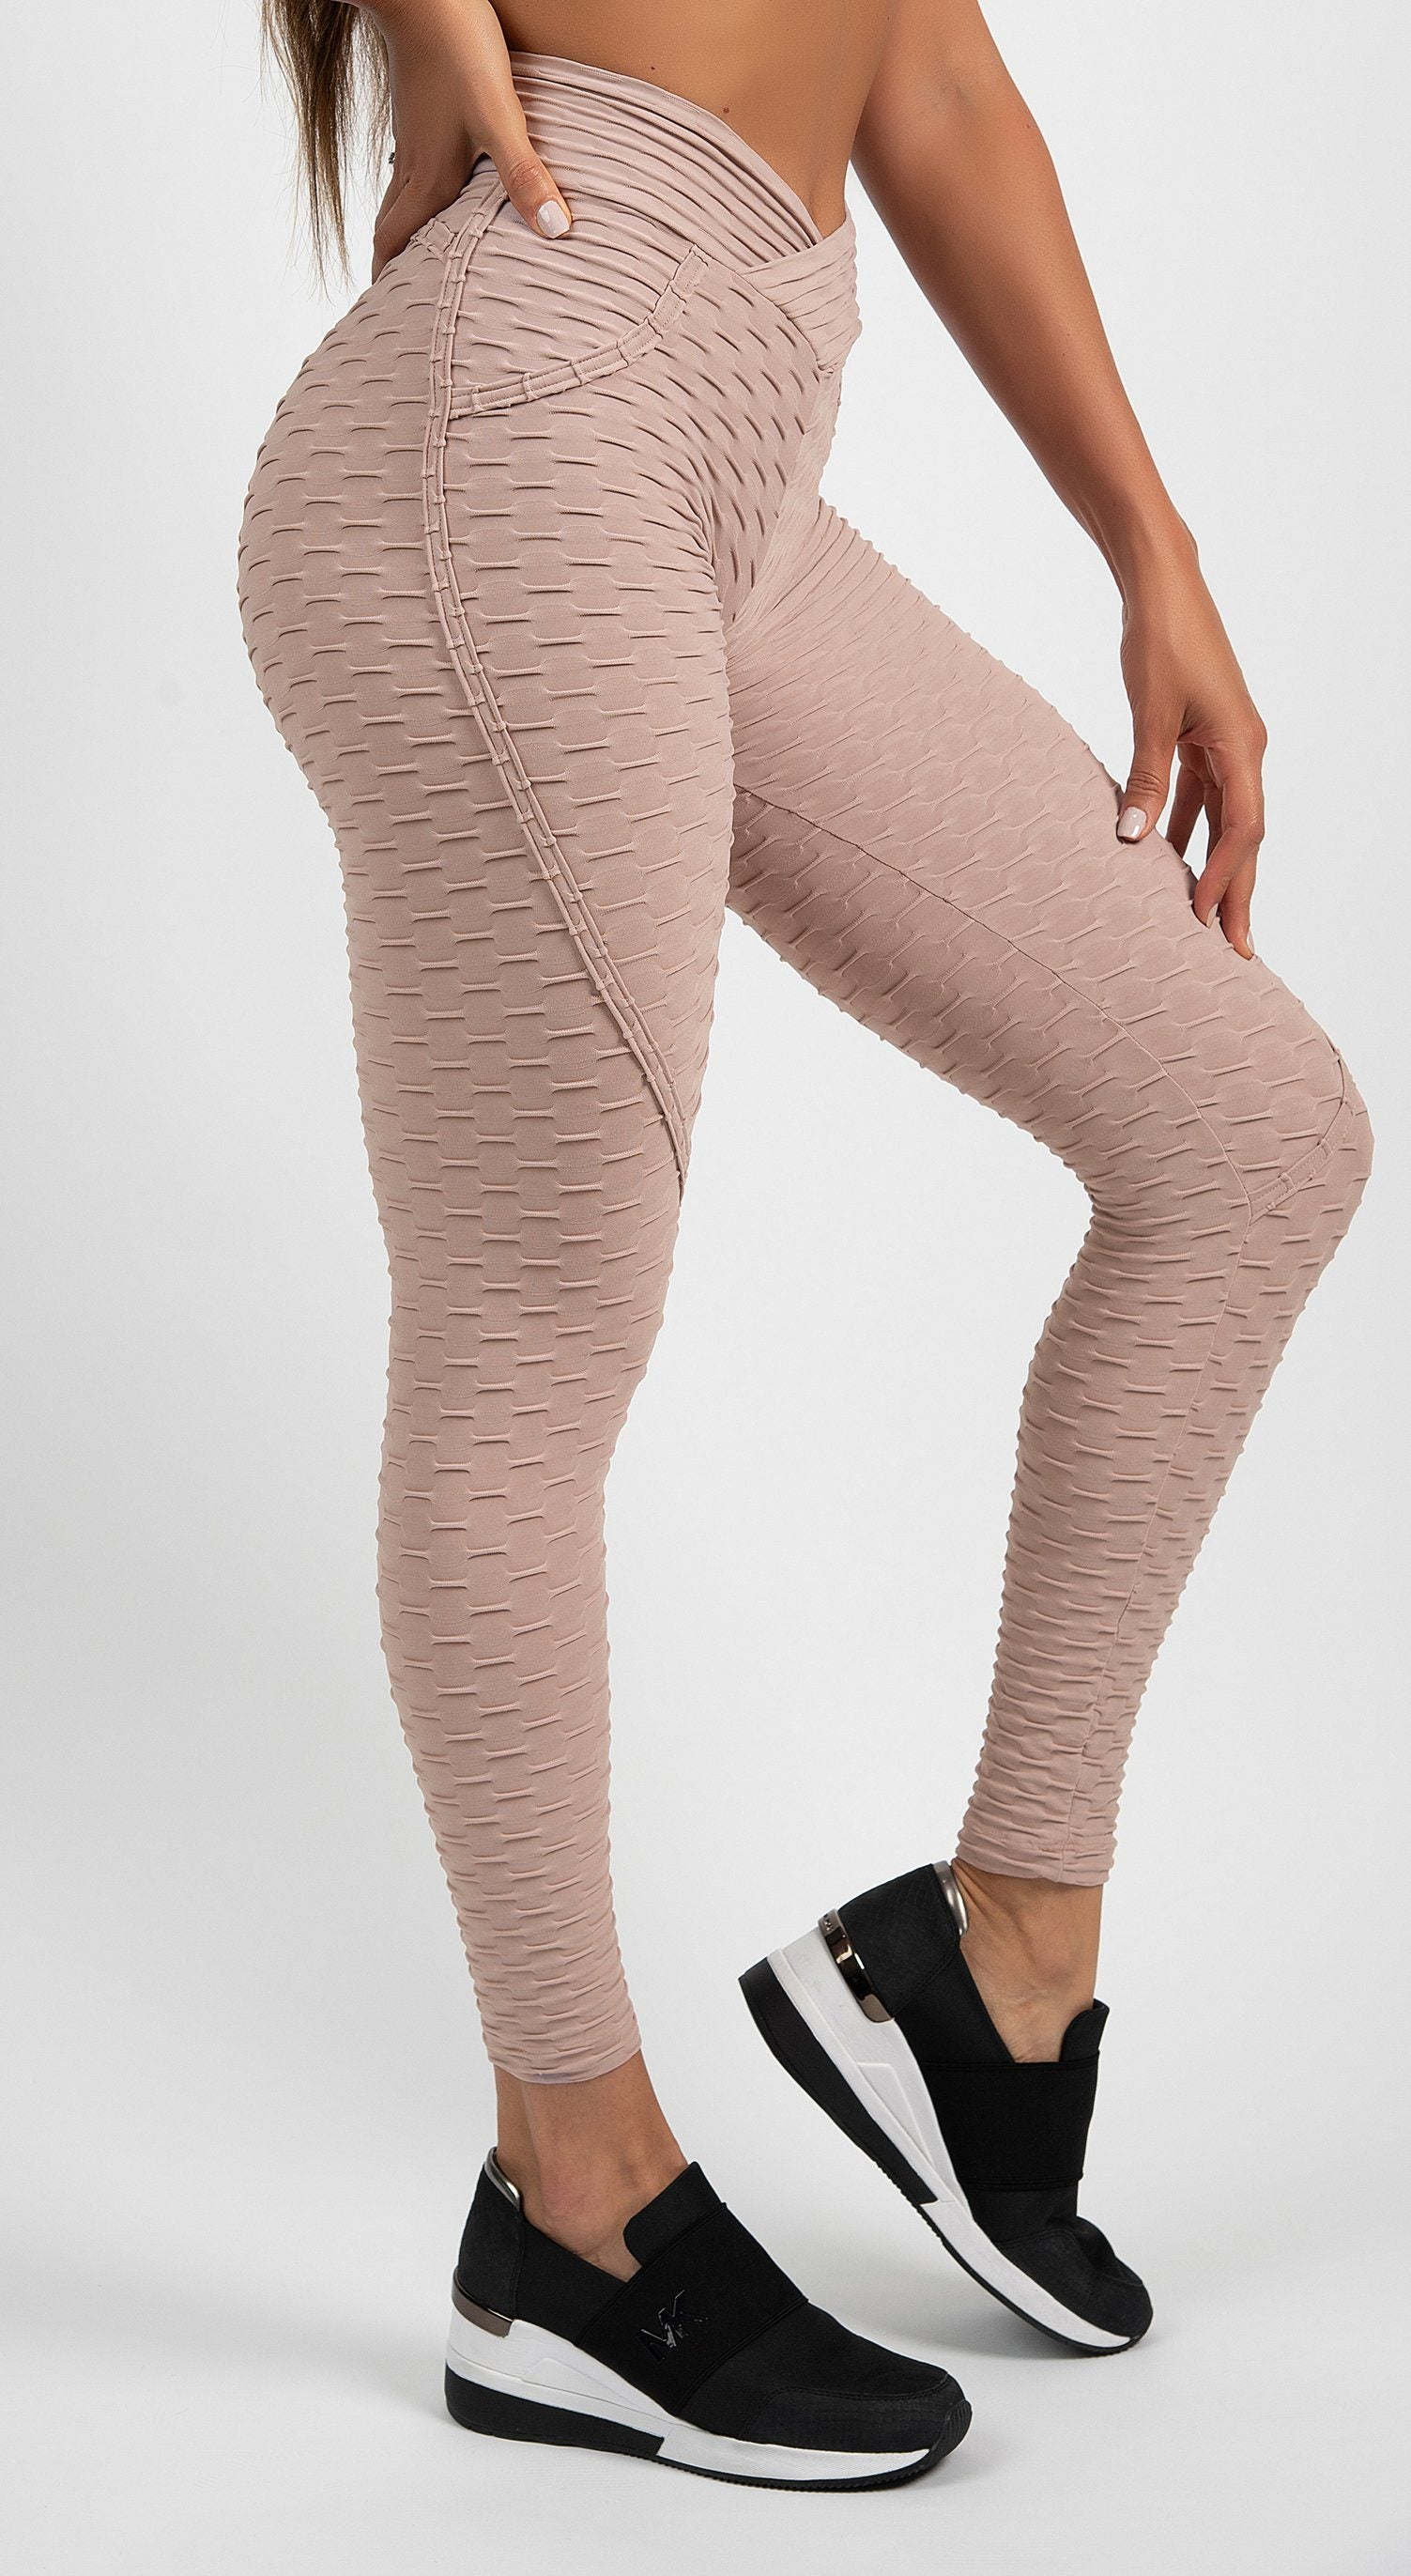 Brazilian Legging -  Anti Cellulite Textured Heart Booty Effect Misty Rose